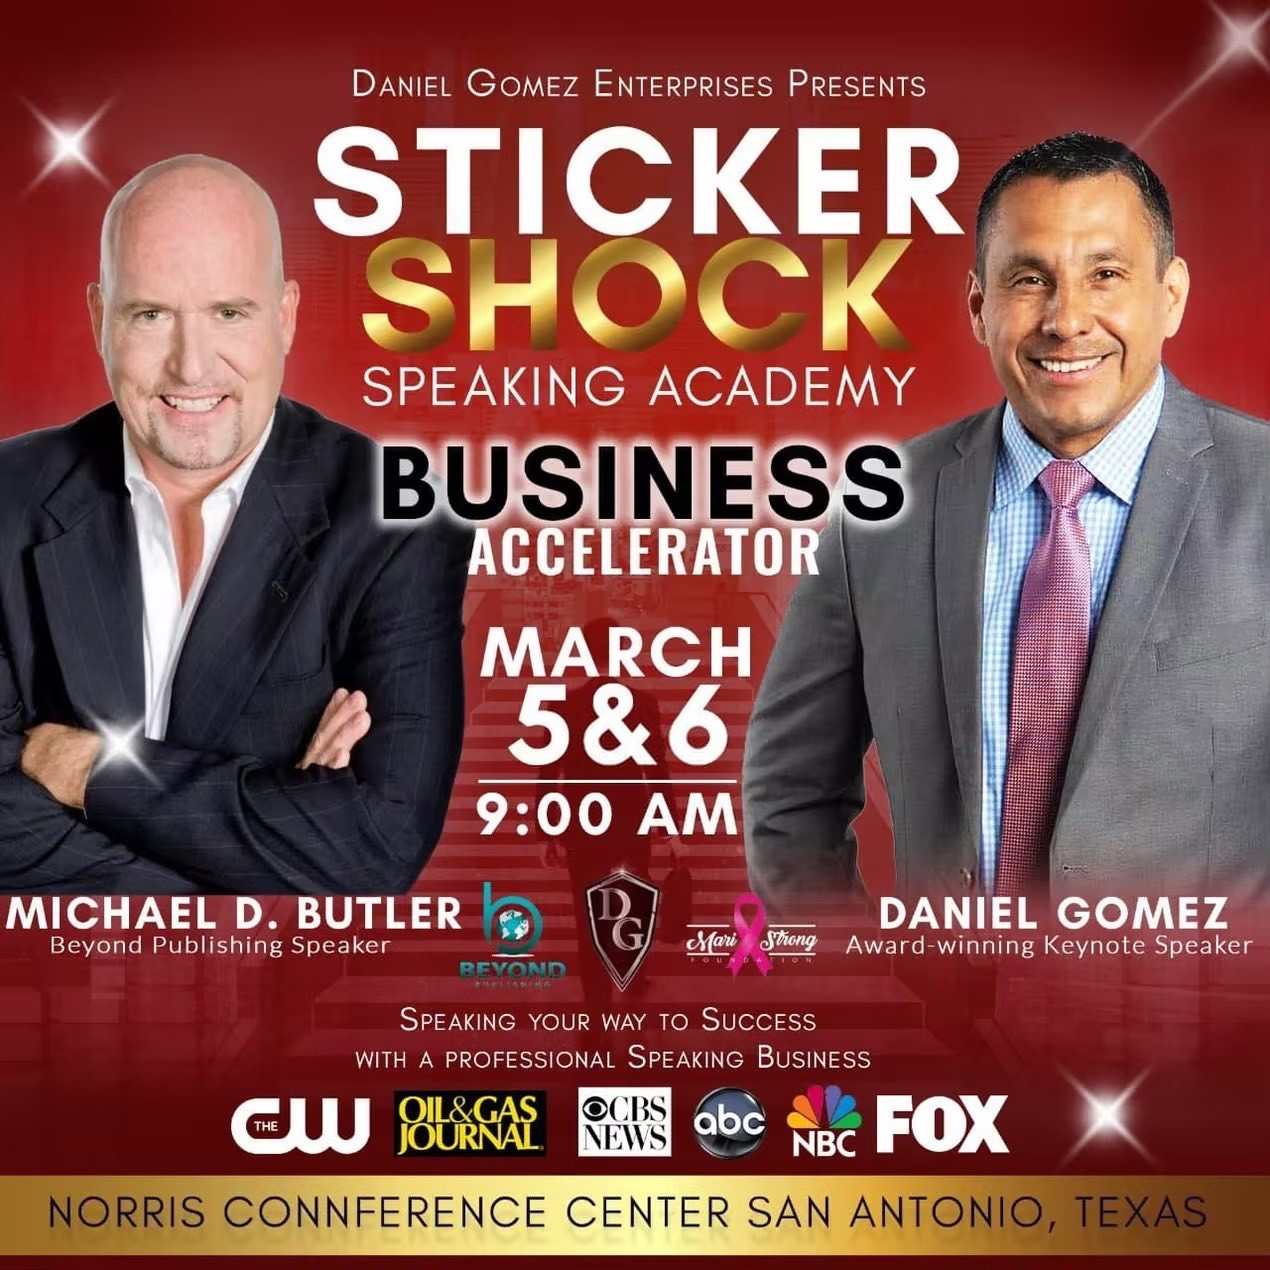 Image and Video of The Daniel Gomez Inspires Show, Executive Confidence Coach and Podcast, Business Strategist, Corporate Trainer, Motivational Keynote Speaker 666